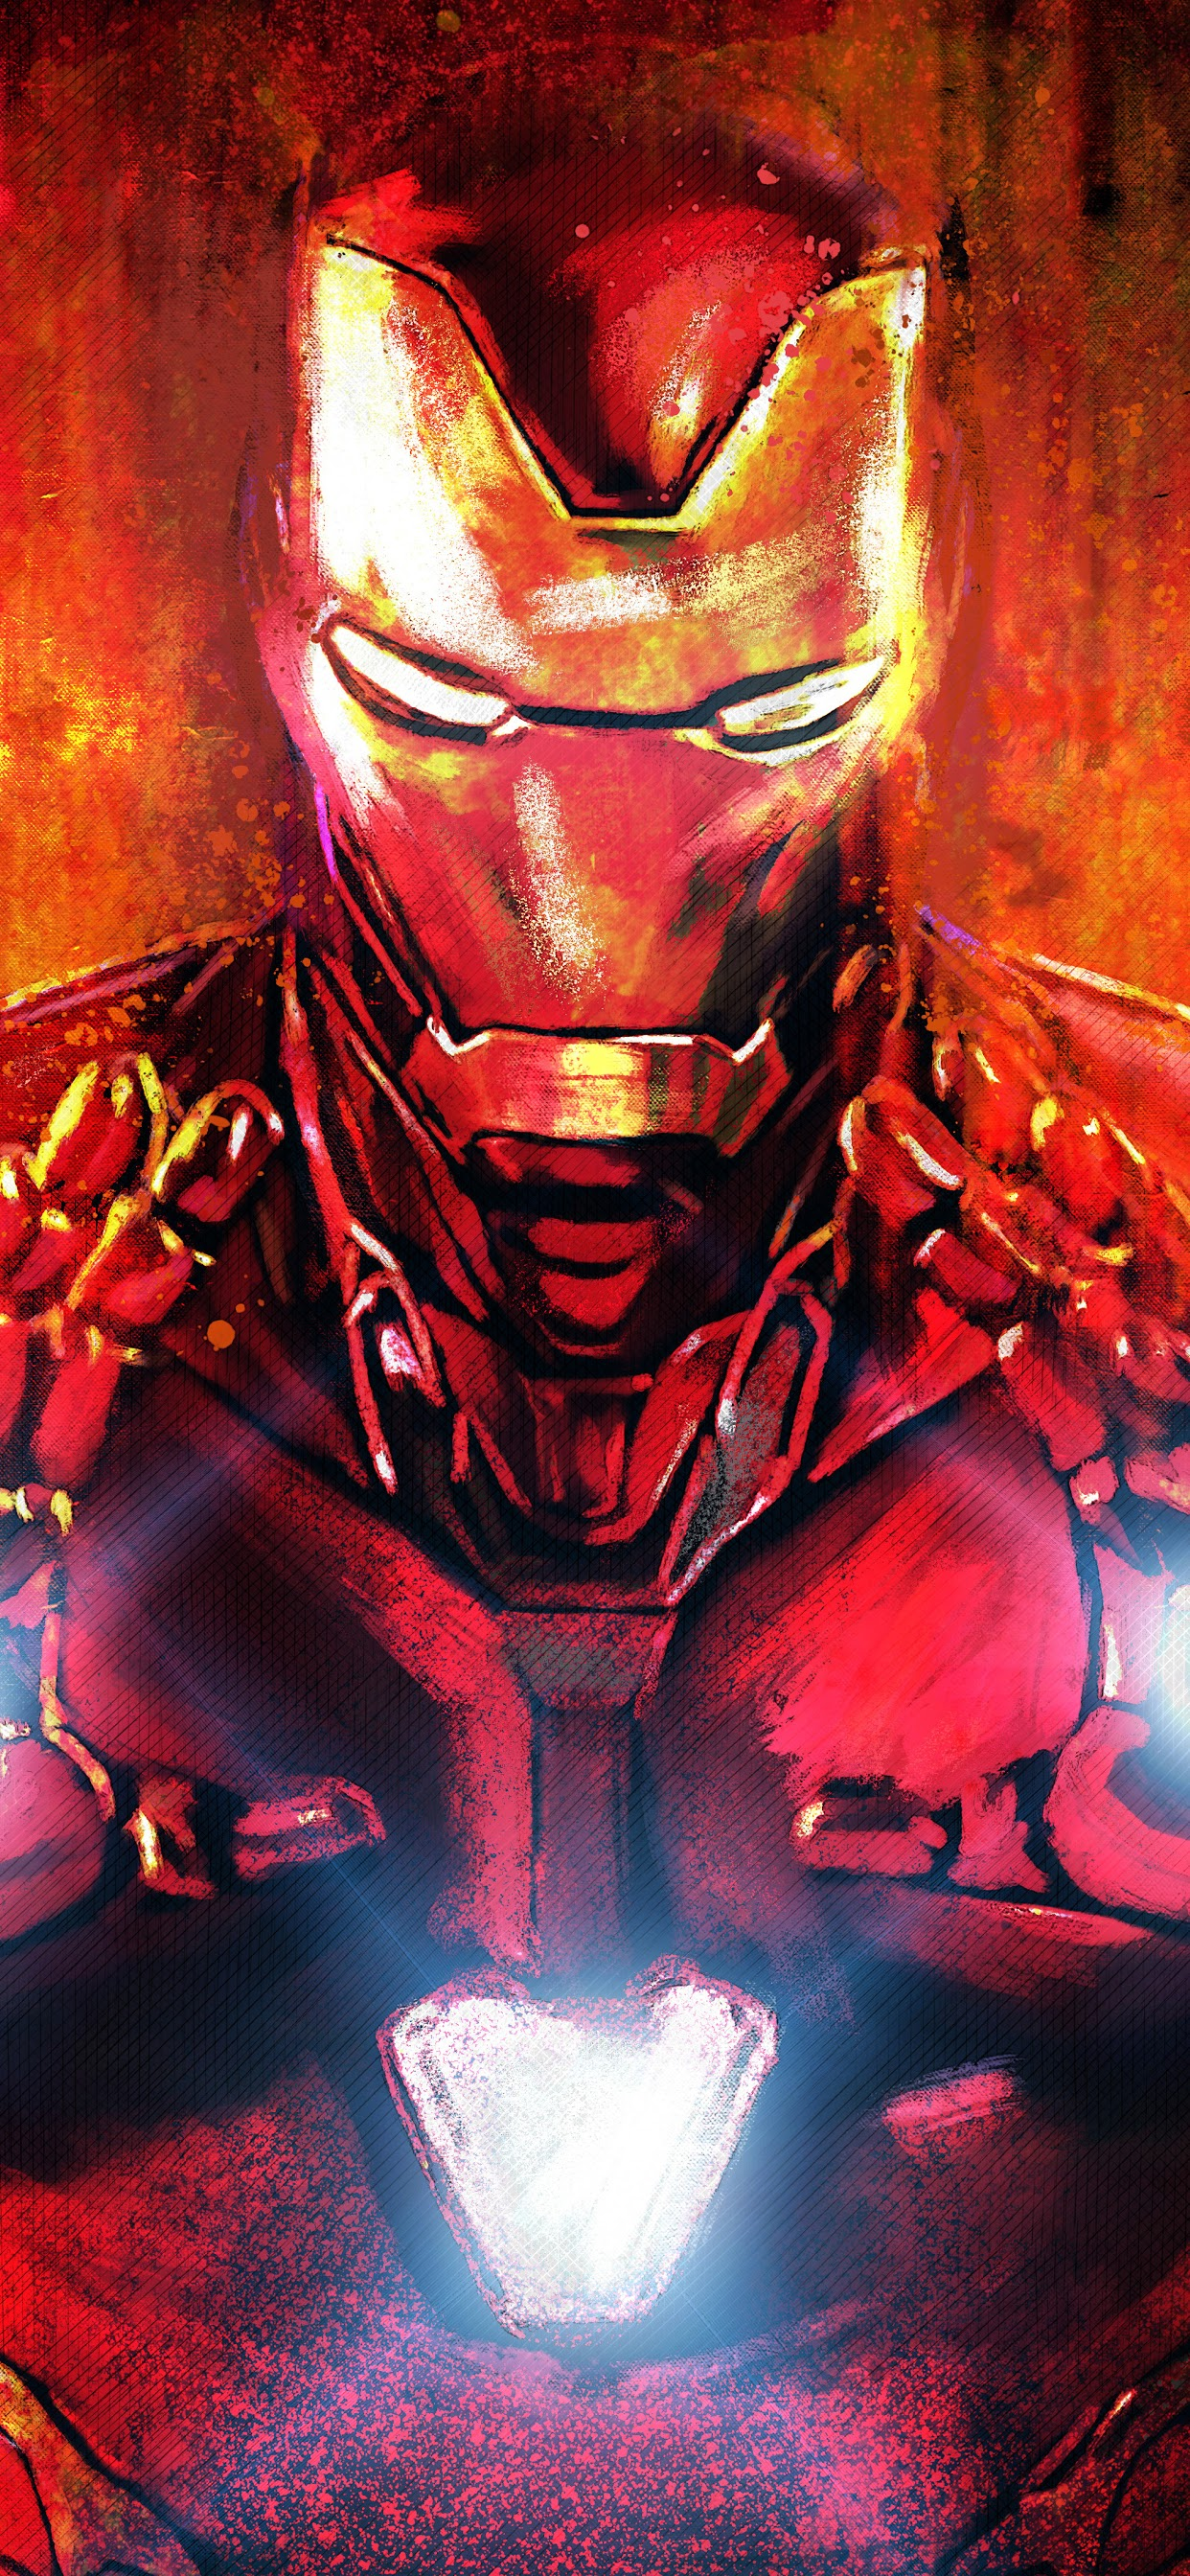 Endgame Iron Man 8k Iphone 11 Pro Max Iron Man 2594067 Hd Wallpaper Backgrounds Download